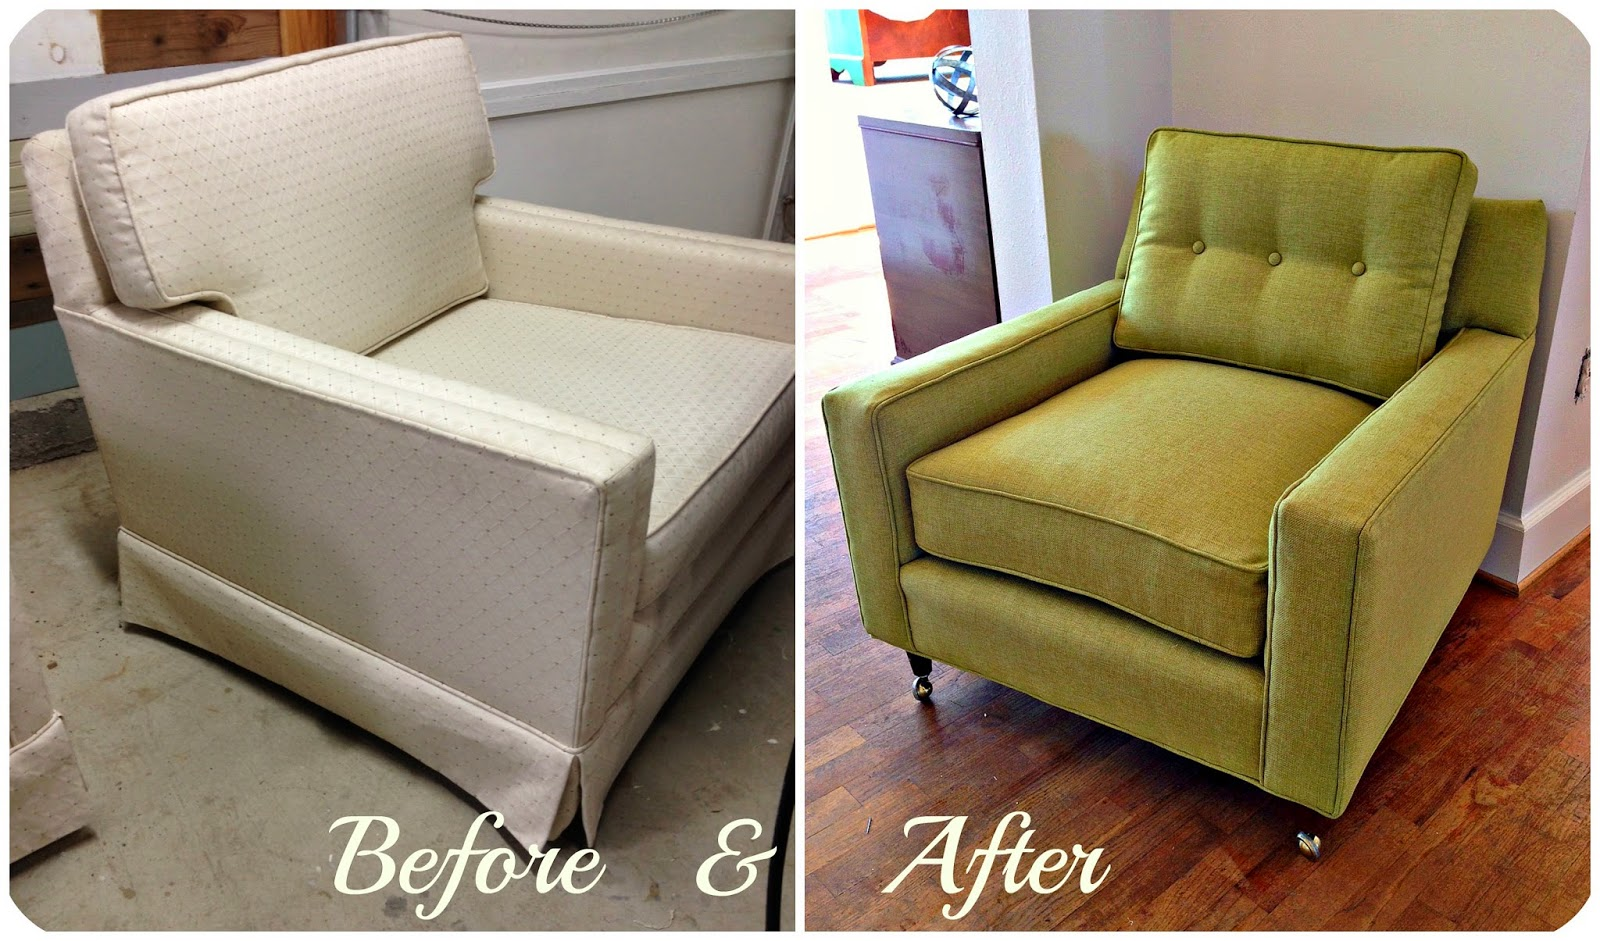 Just A Few Easy Changes Totally Brought The Chair Back To A Classic Mid  Century Style That Is So Fresh Right Now. That Is One Of My Favorite Things  About ...